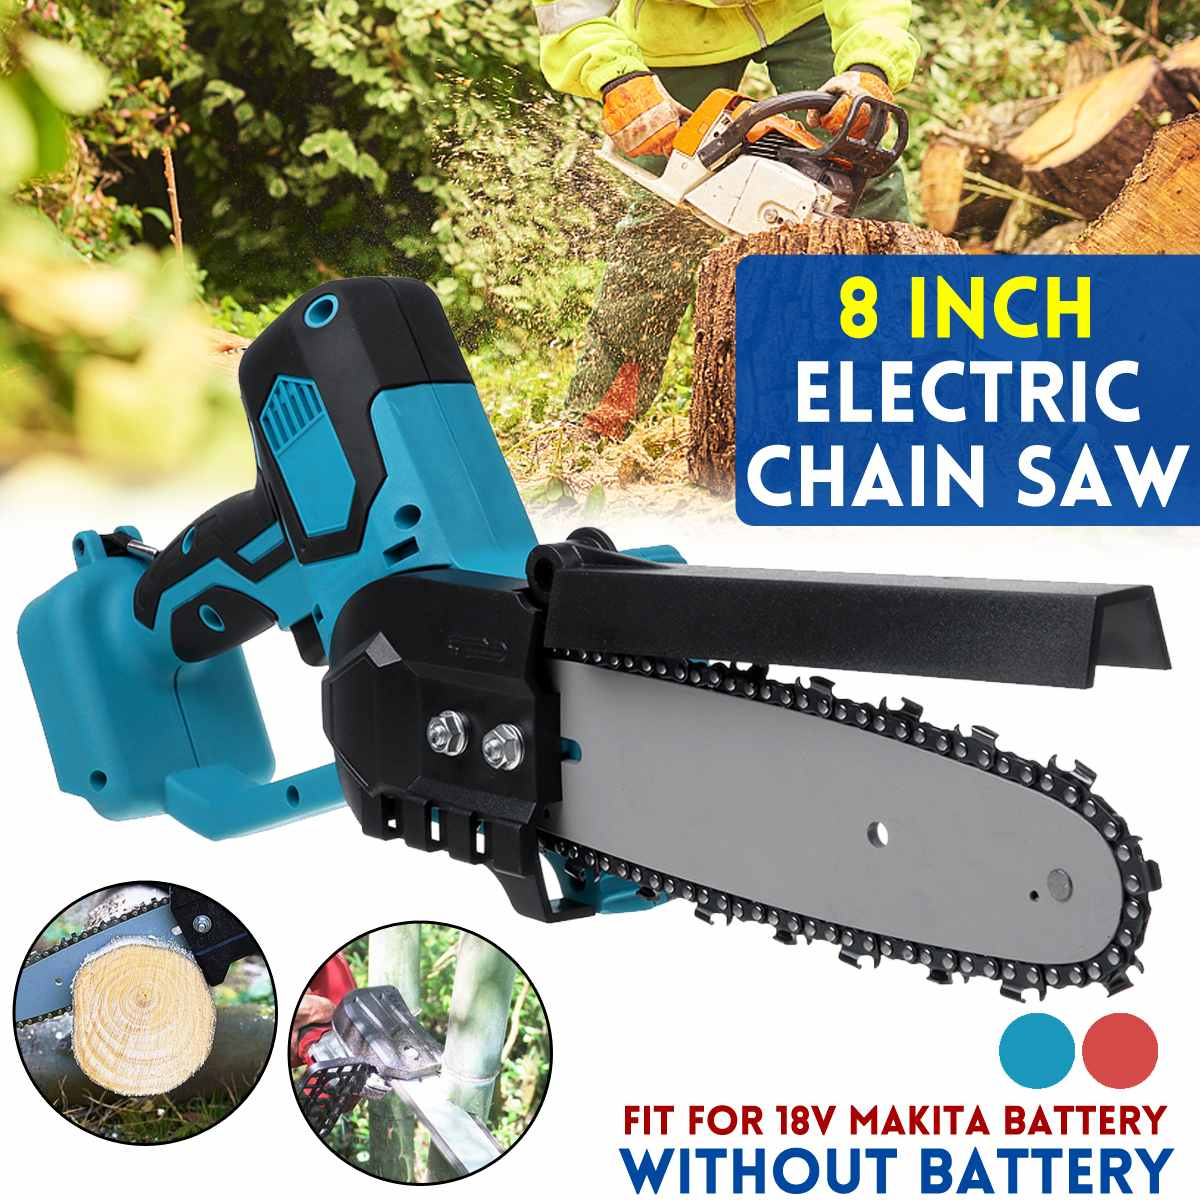 1080W 8 inch Electric Saw Chainsaw Wood Cutters Bracket Power Tool Chain Saw For Makita 18V Battery  Tool Only